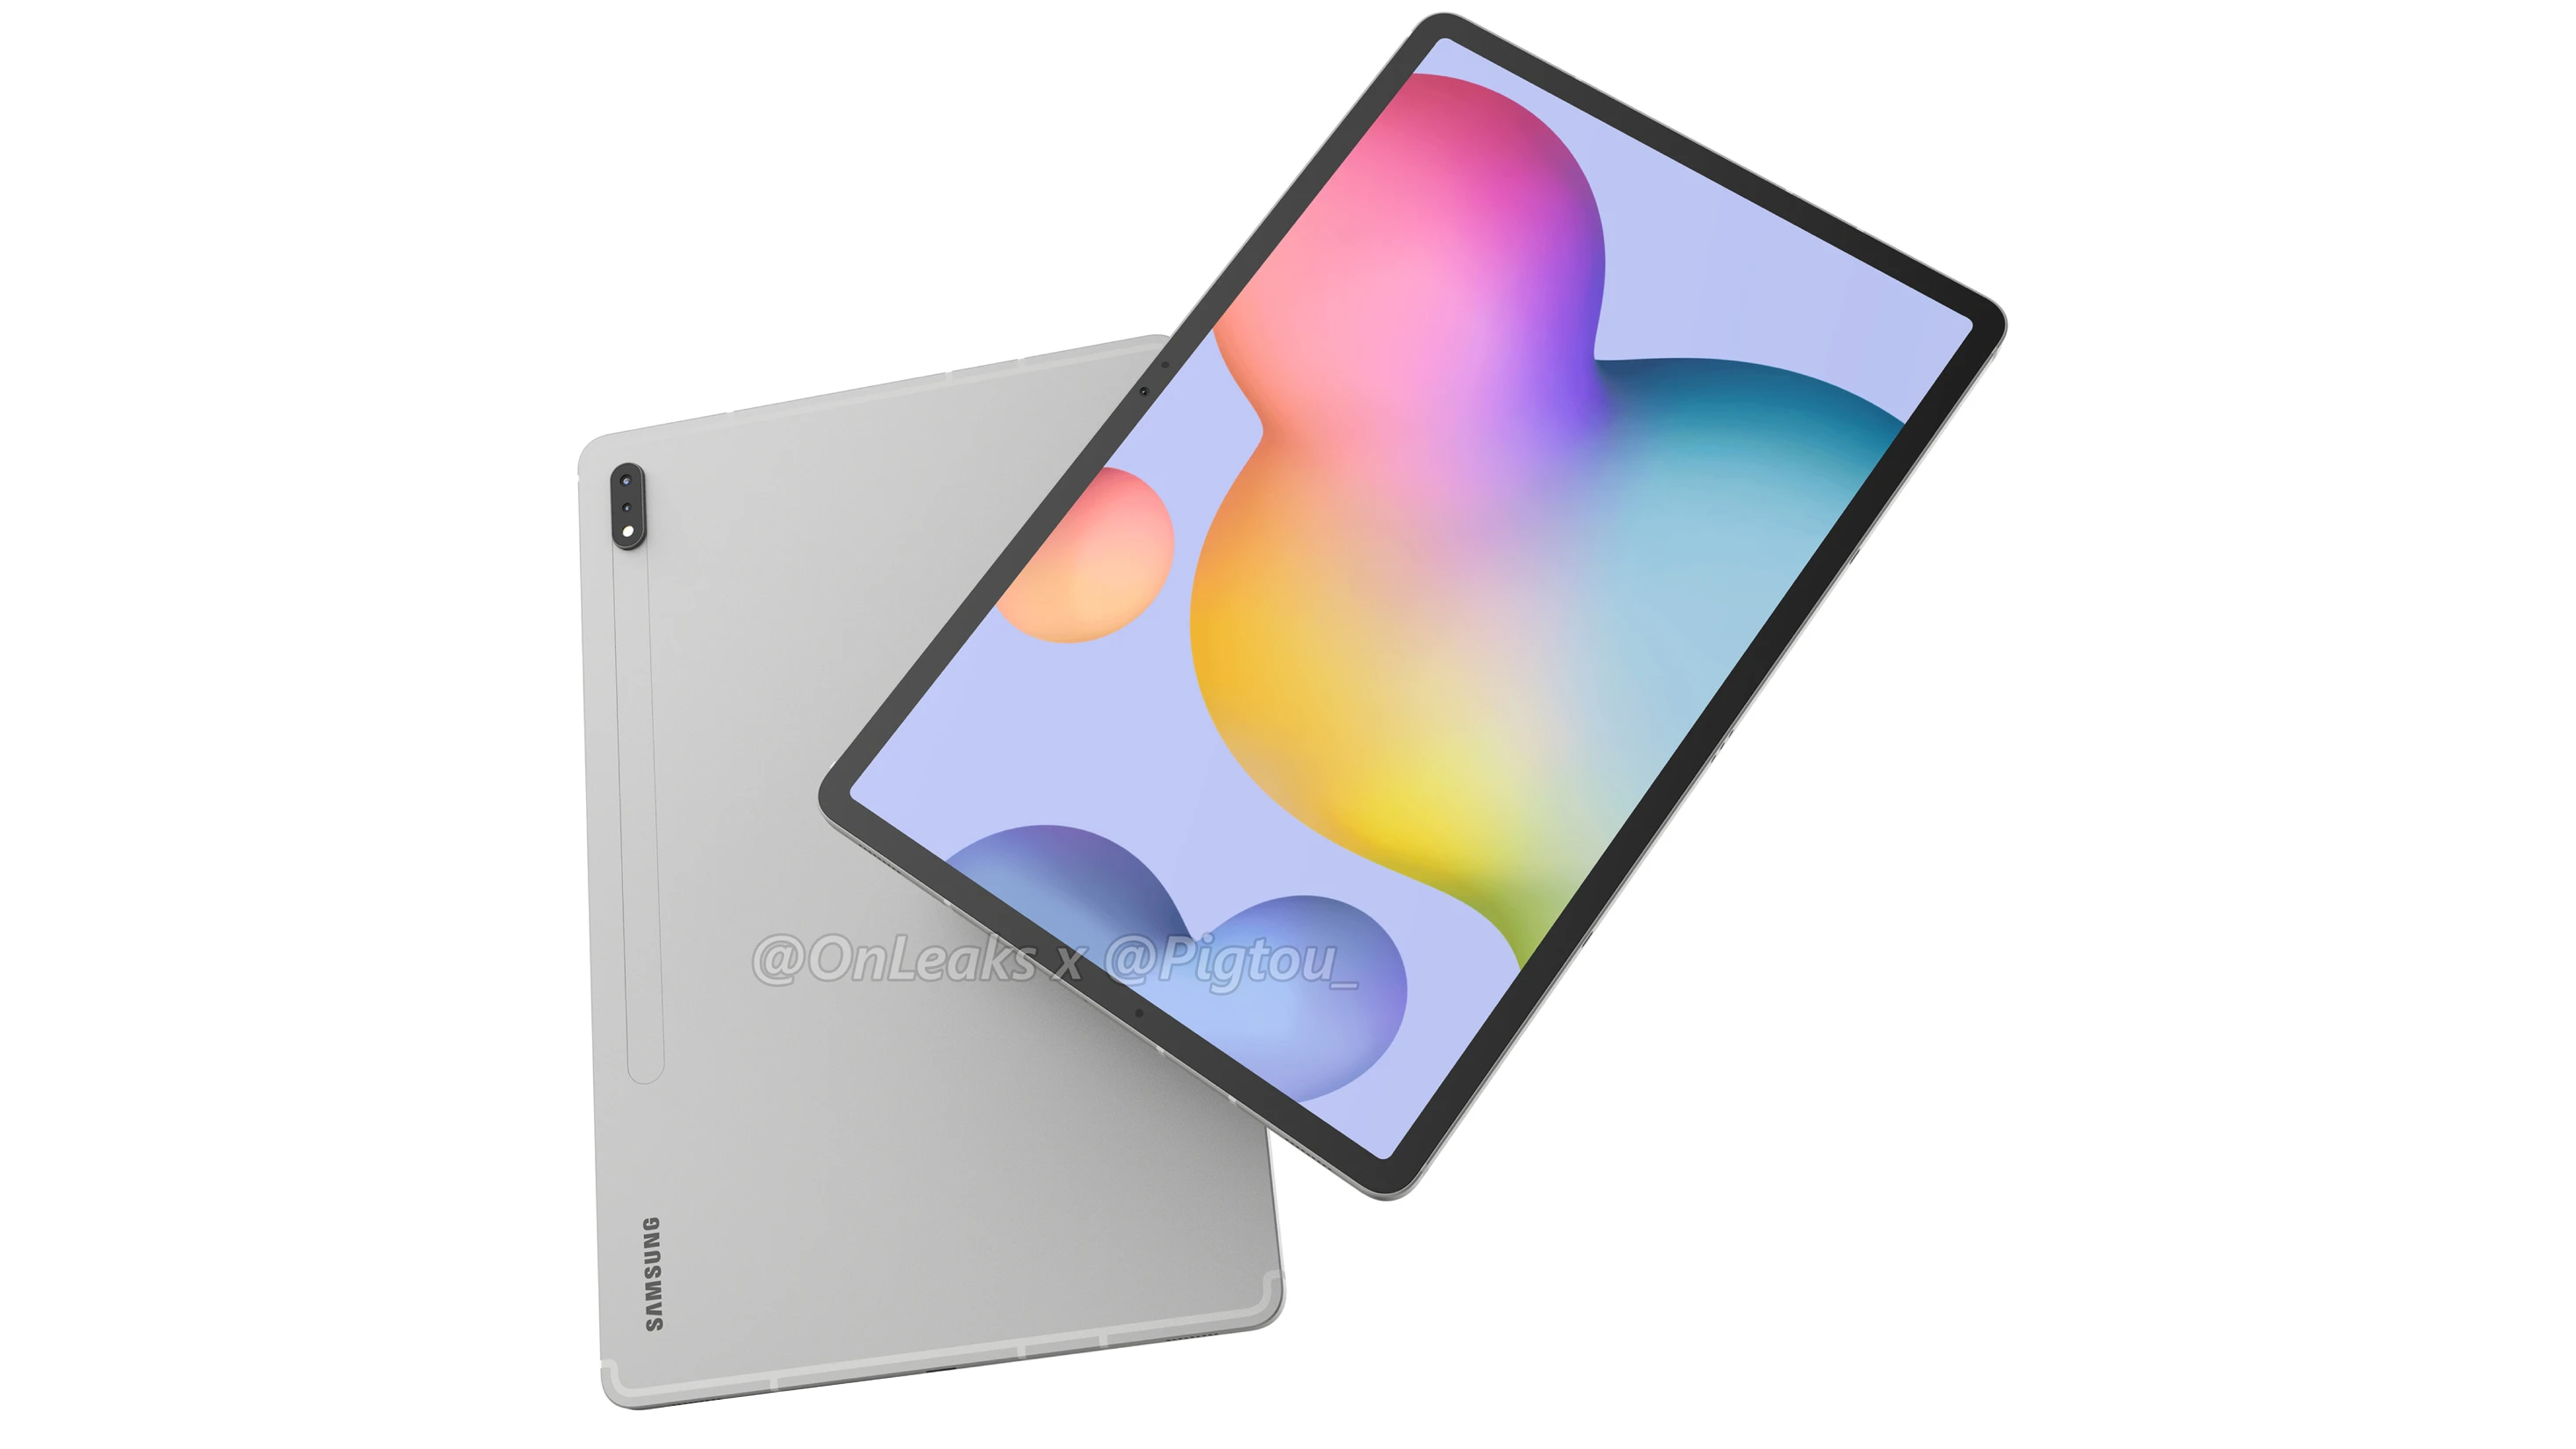 Galaxy Tab S7 And S7 Specifications Appear In Google Play Console